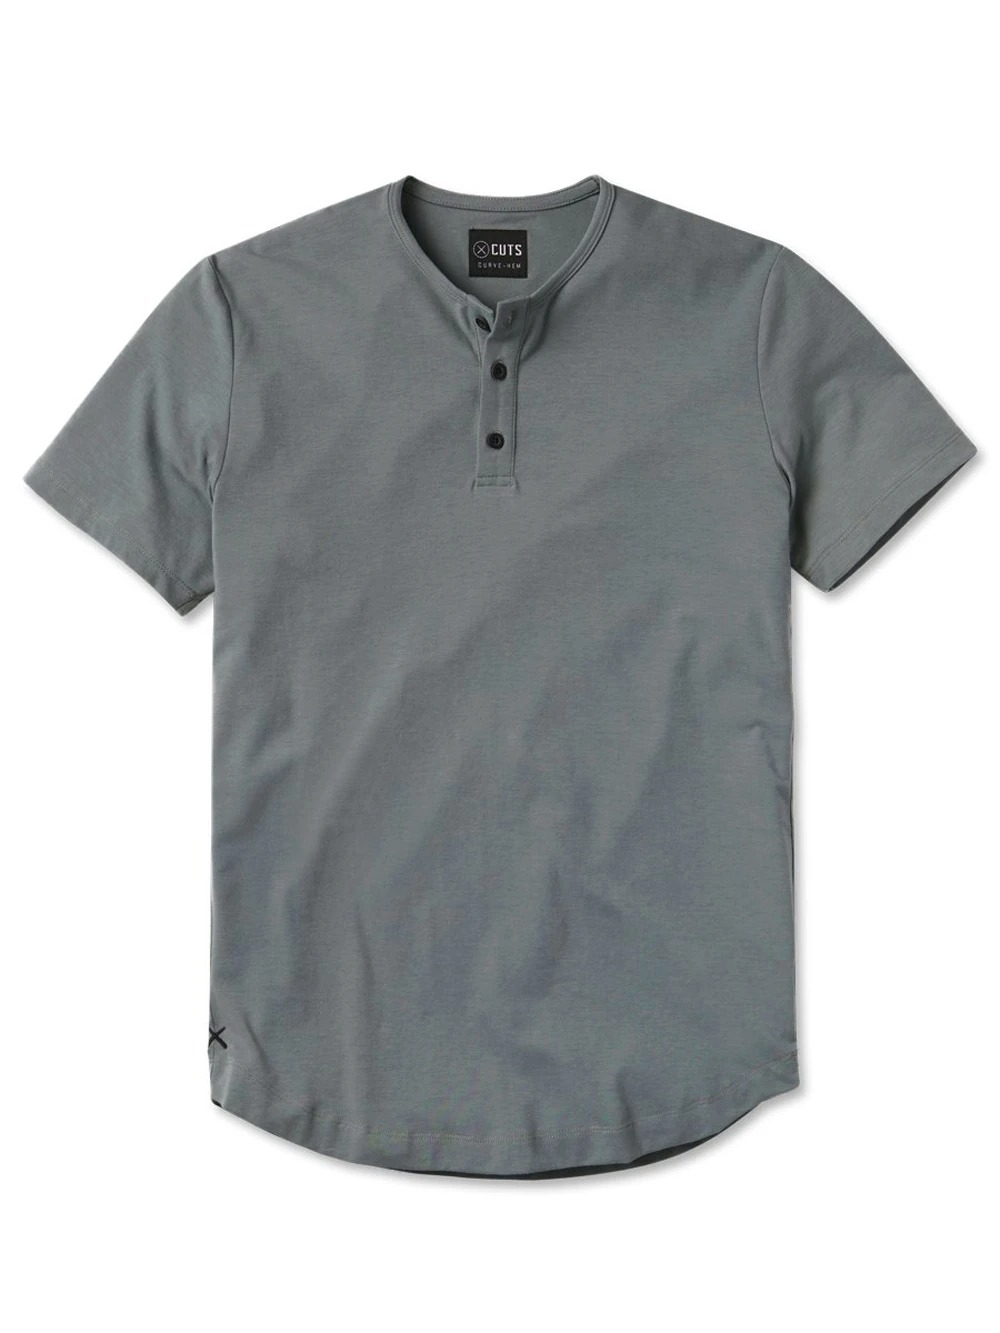 Cuts Clothing Short-Sleeve Henley with Curve Hem in sage, best henley shirts